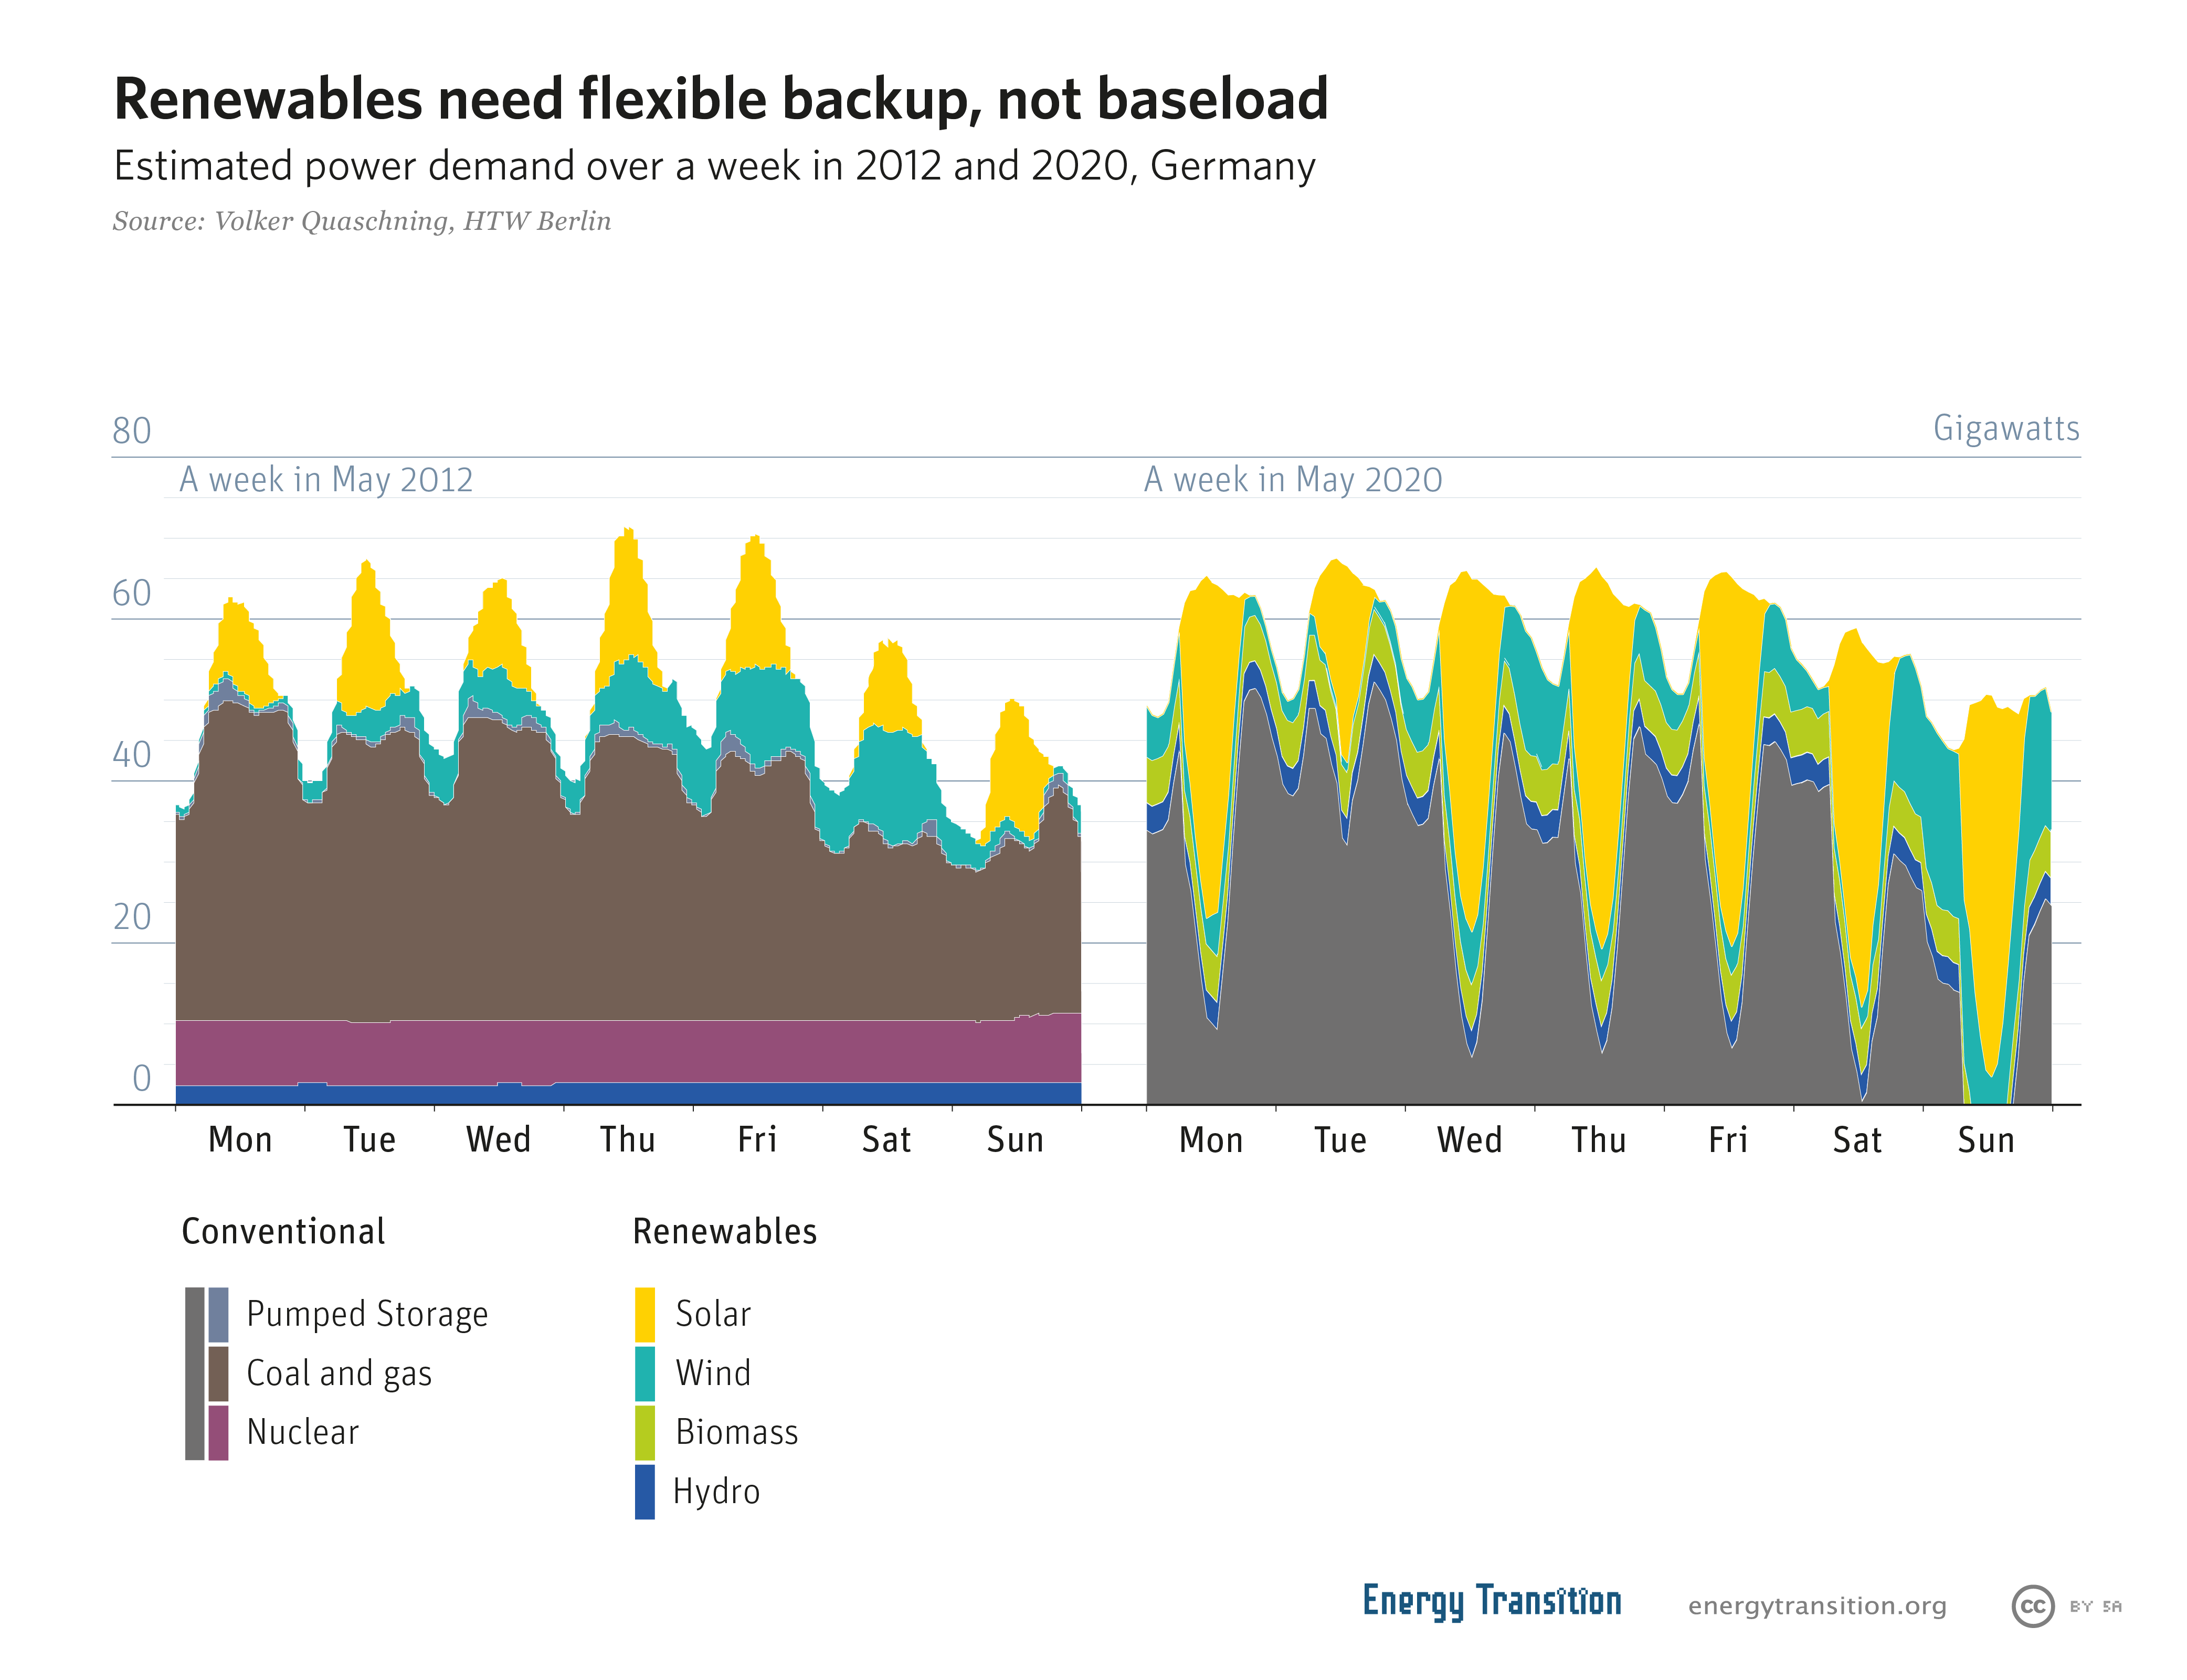 Renewables need flexible backup not baseload